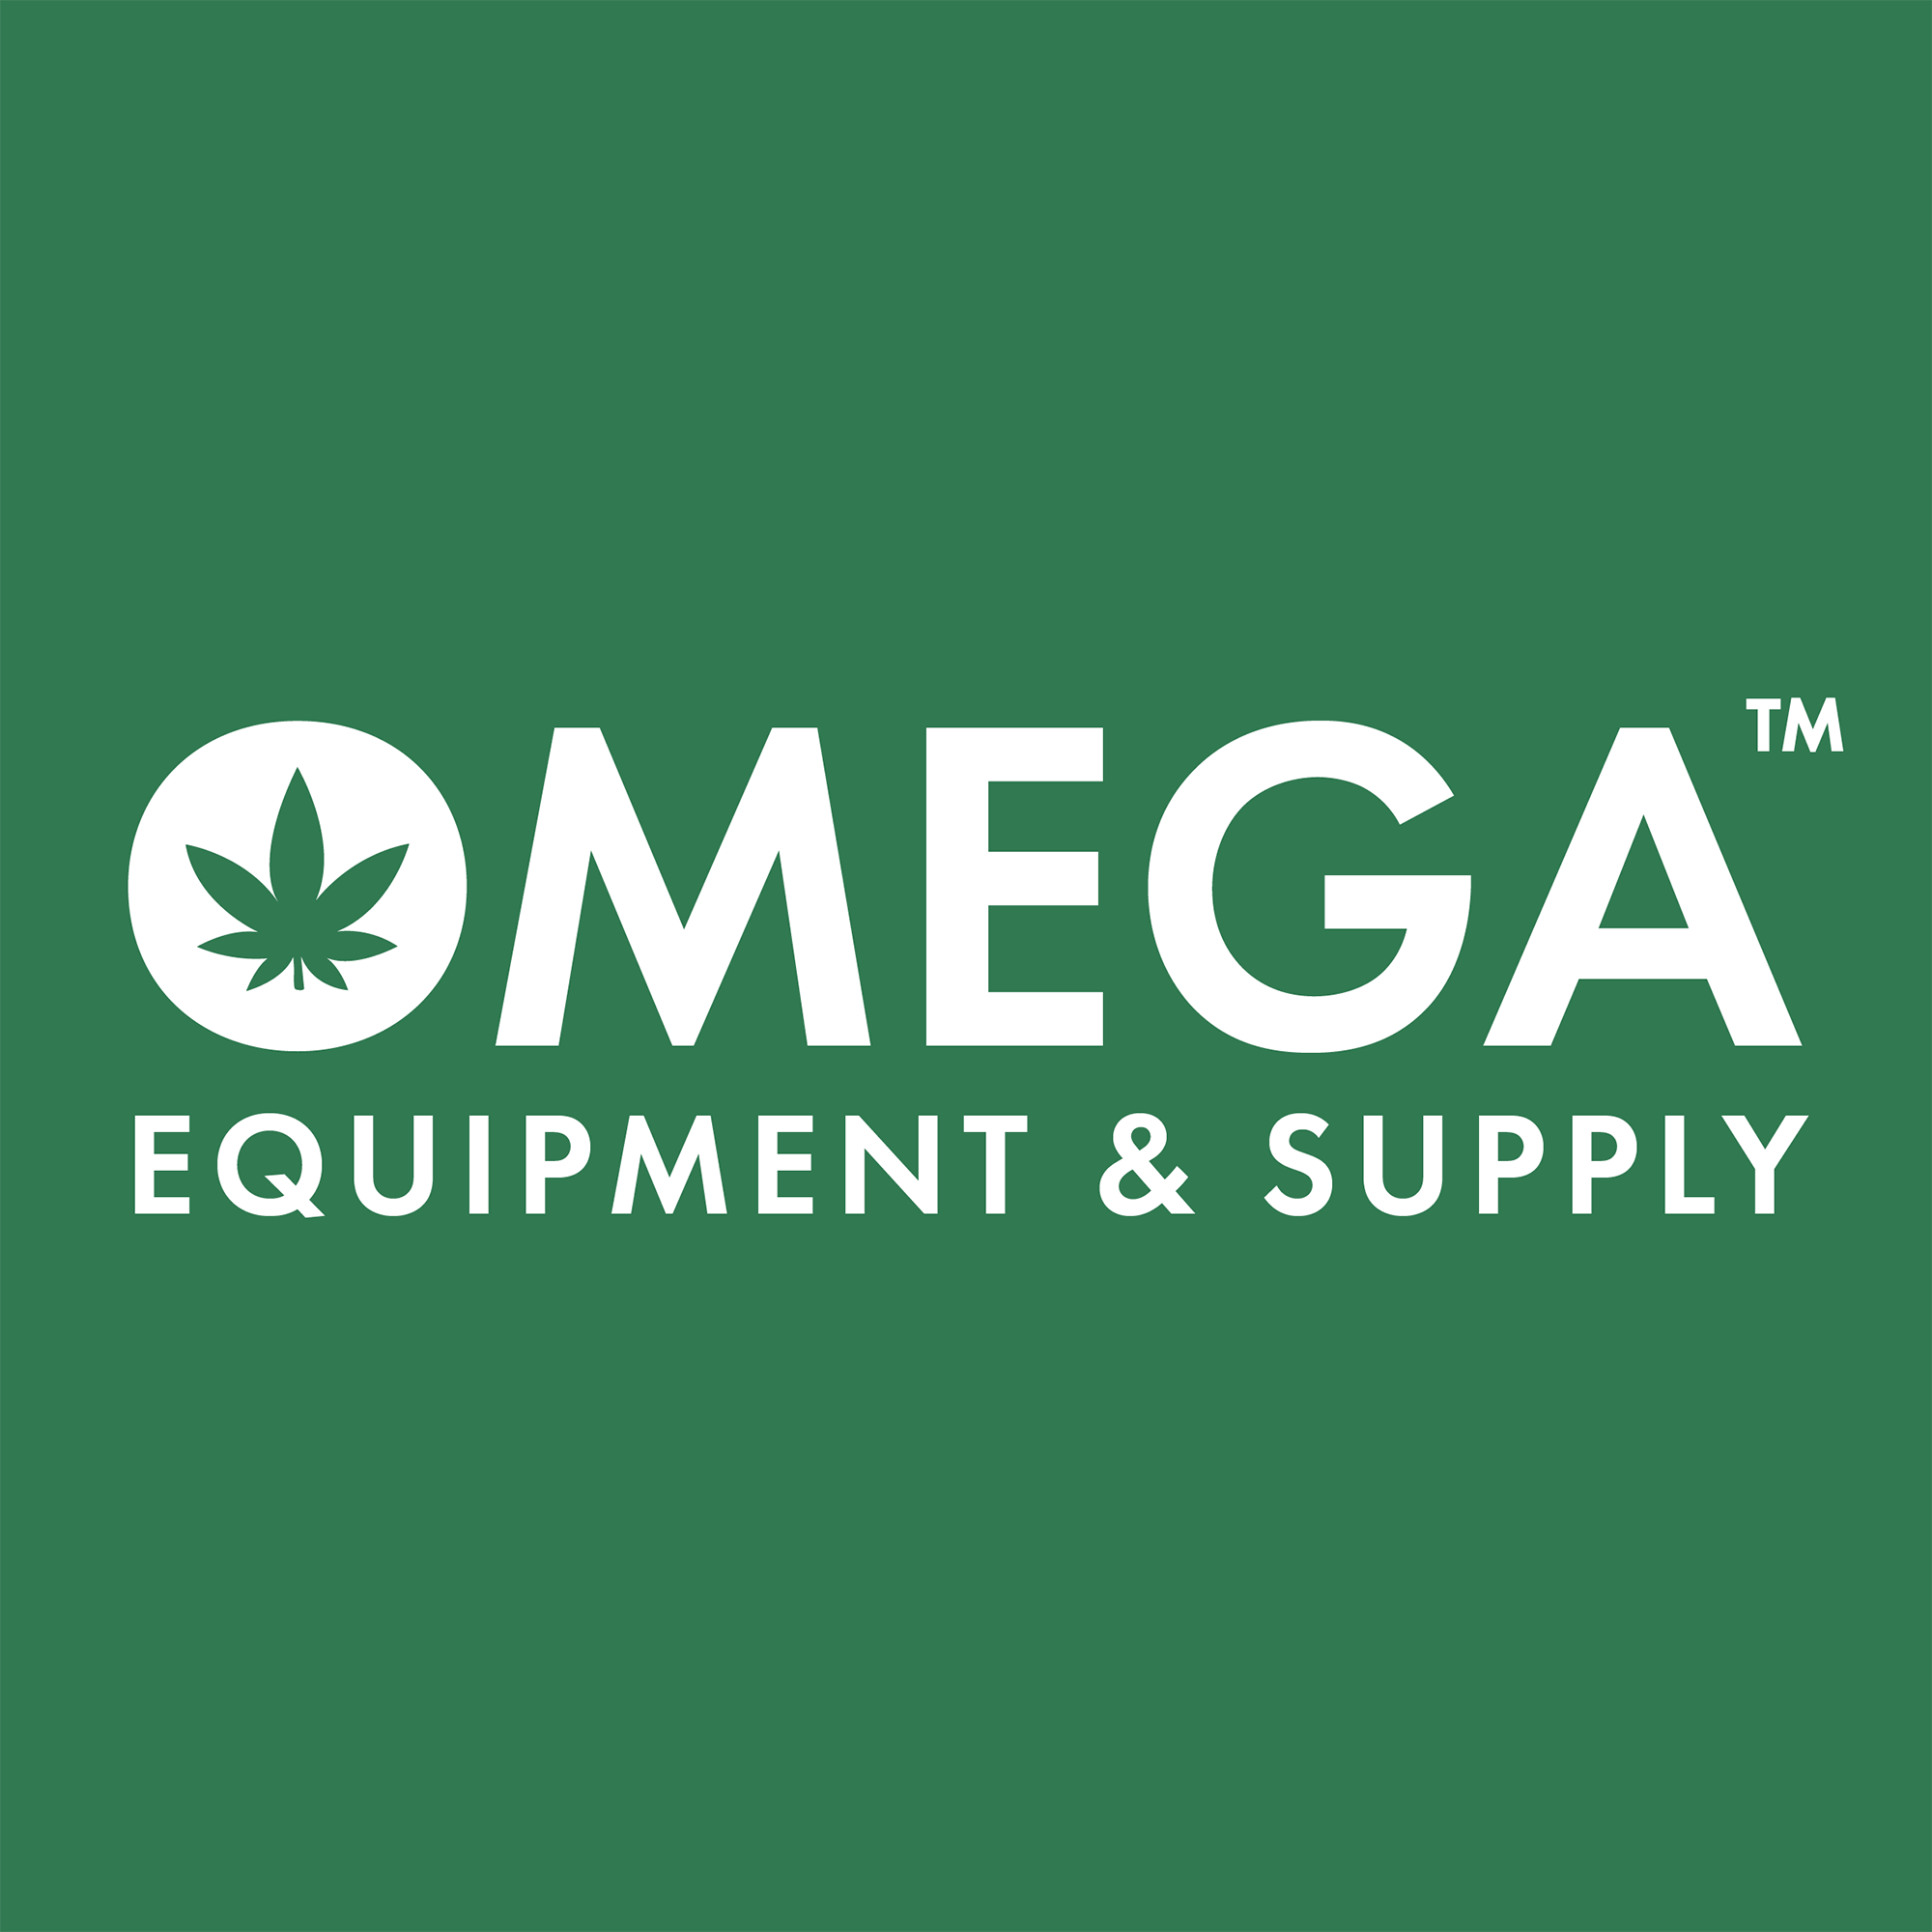 Omega Equipment & Supply